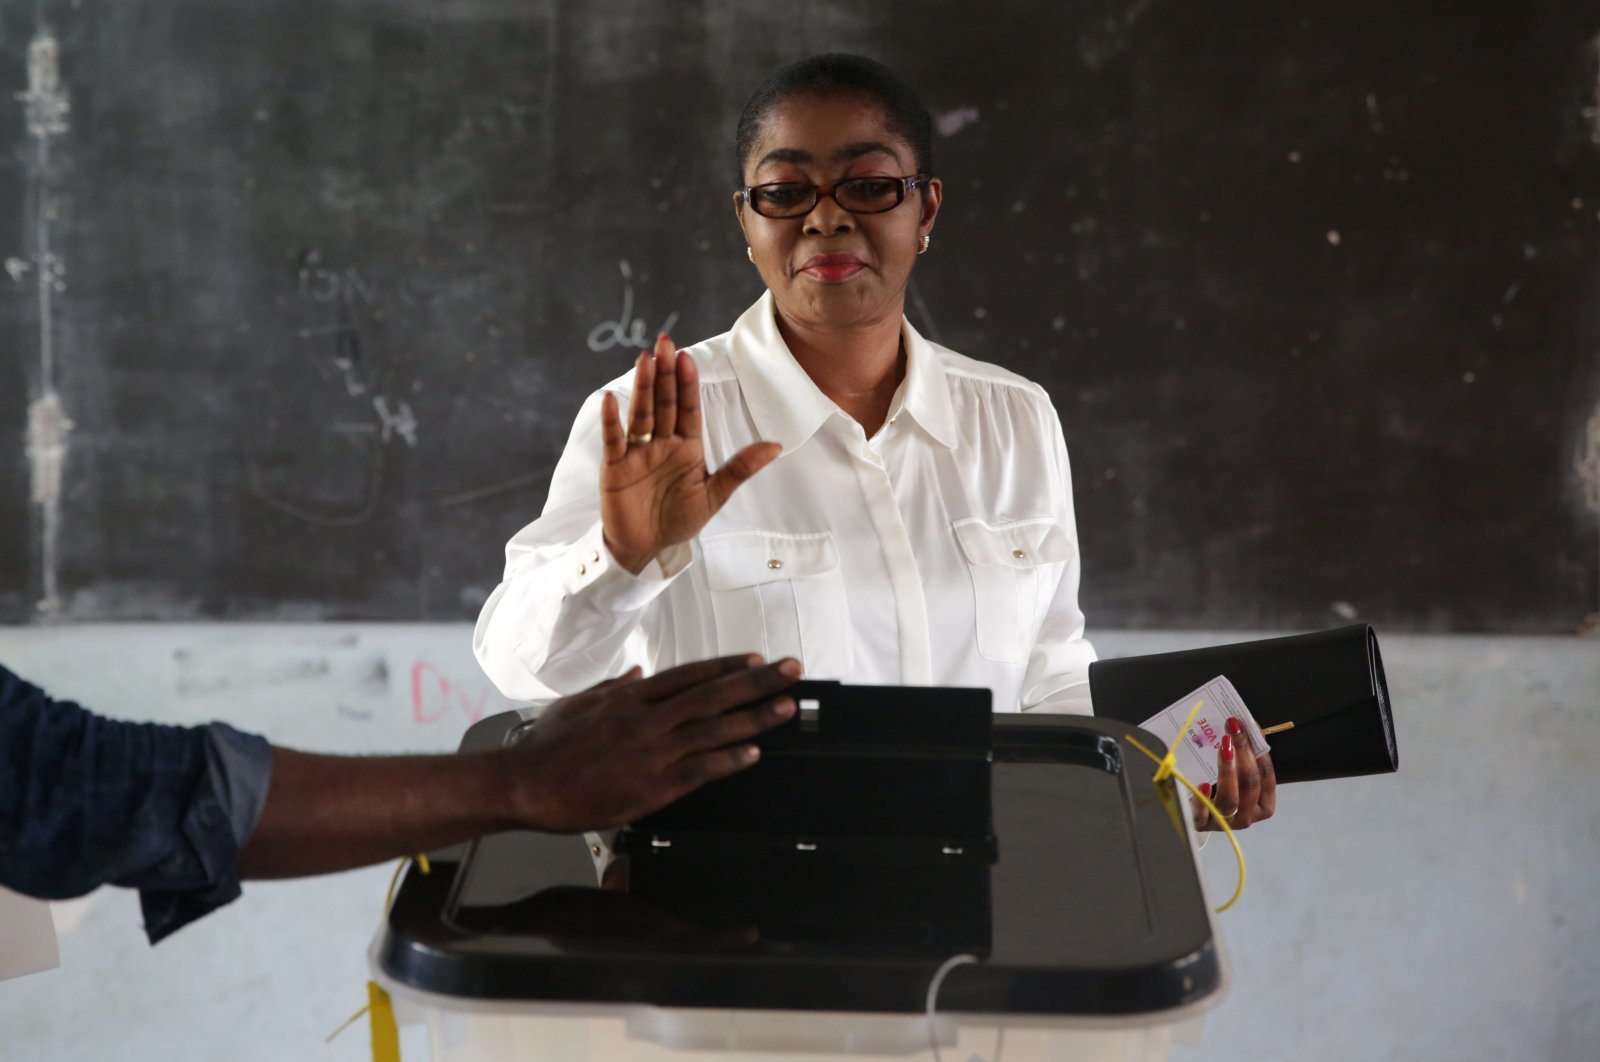 Mayor of Libreville and Gabonese Democratic Party (PDG) candidate for the local elections, Rose Christiane Ossouka Raponda, casts her vote at a polling station in Libreville, during the first round of the country's legislative and municipal elections, Oct. 6, 2018. (AFP)